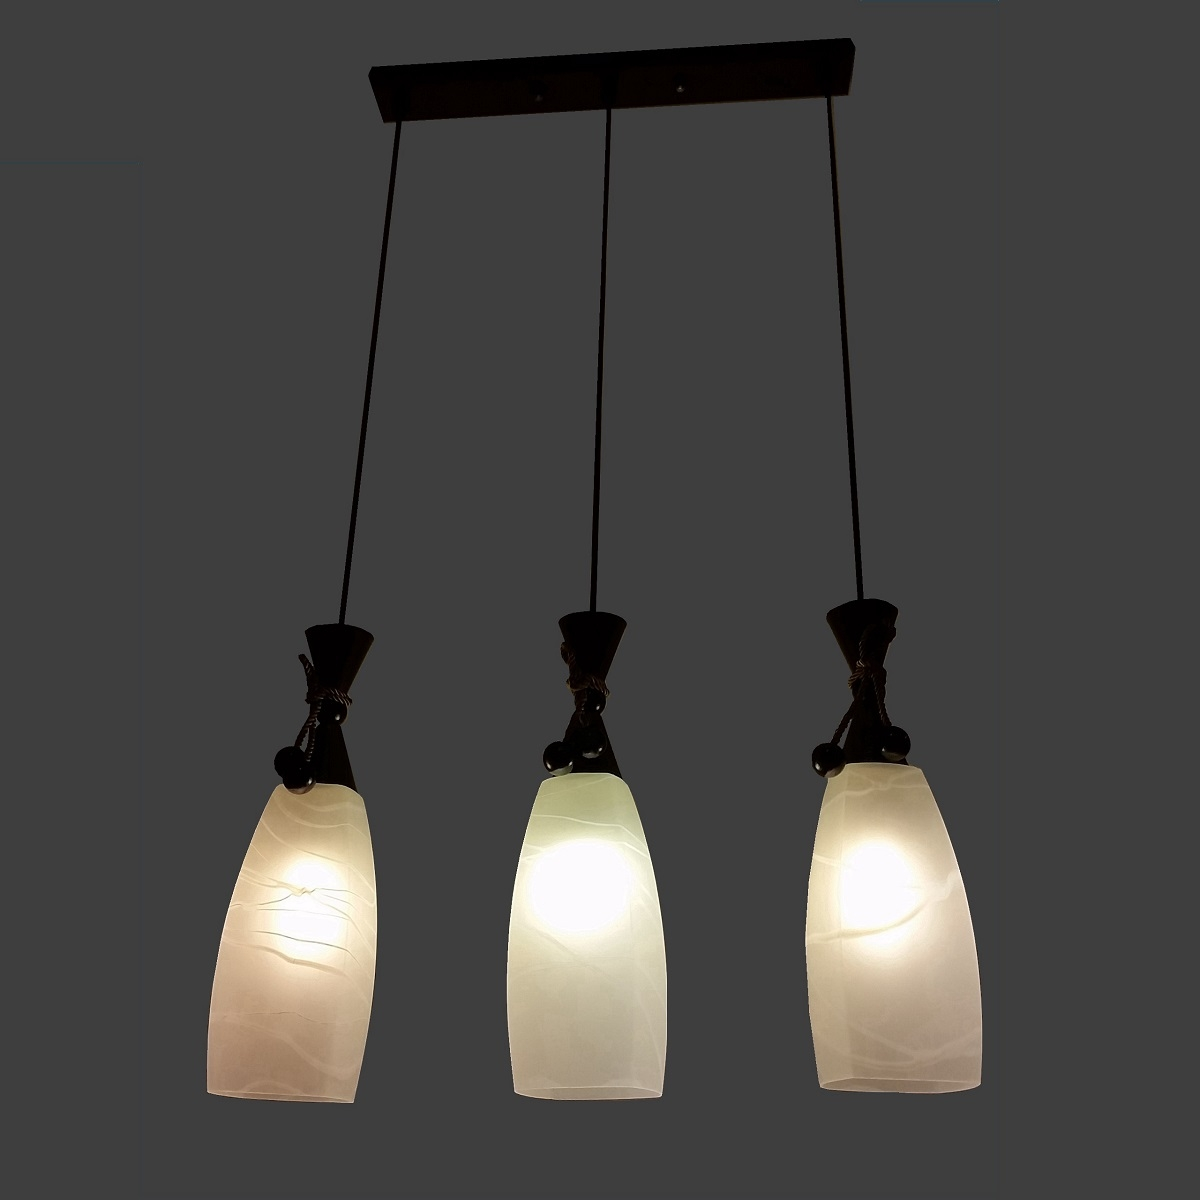 PL6188 3 Hanging Pendant Lamp L Brilliant Source Lighting